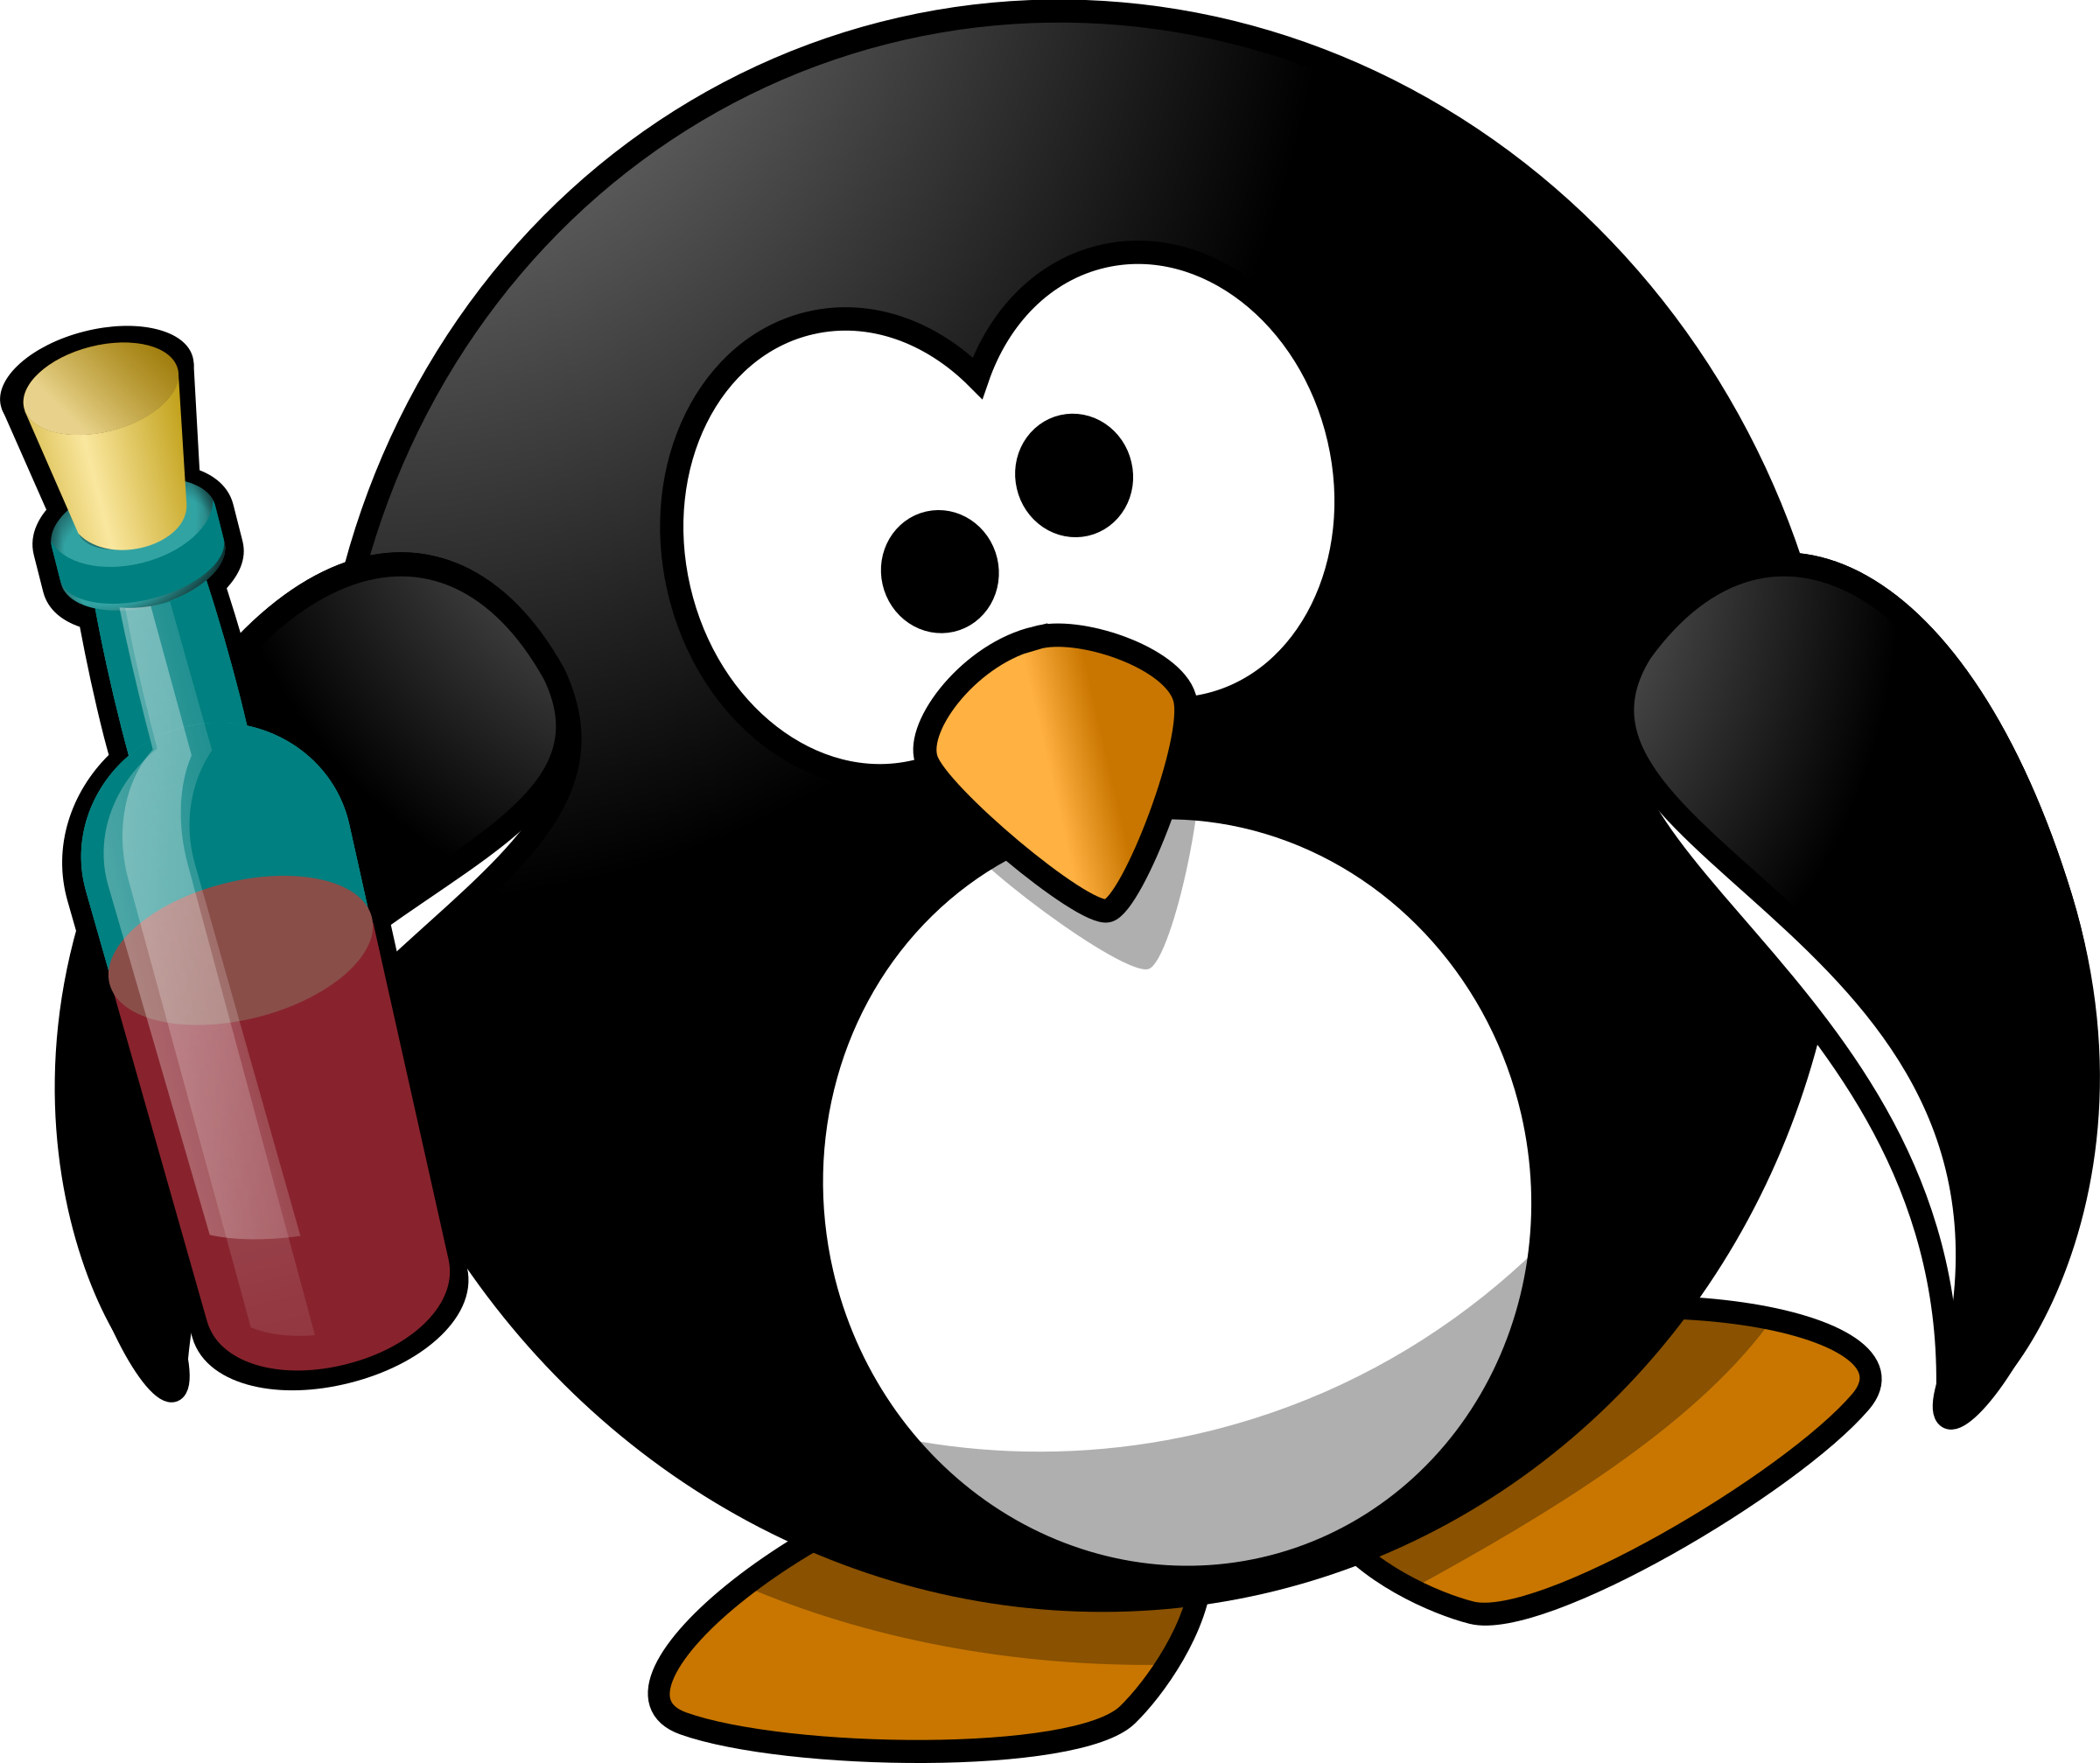 Drunk penguin by Moini